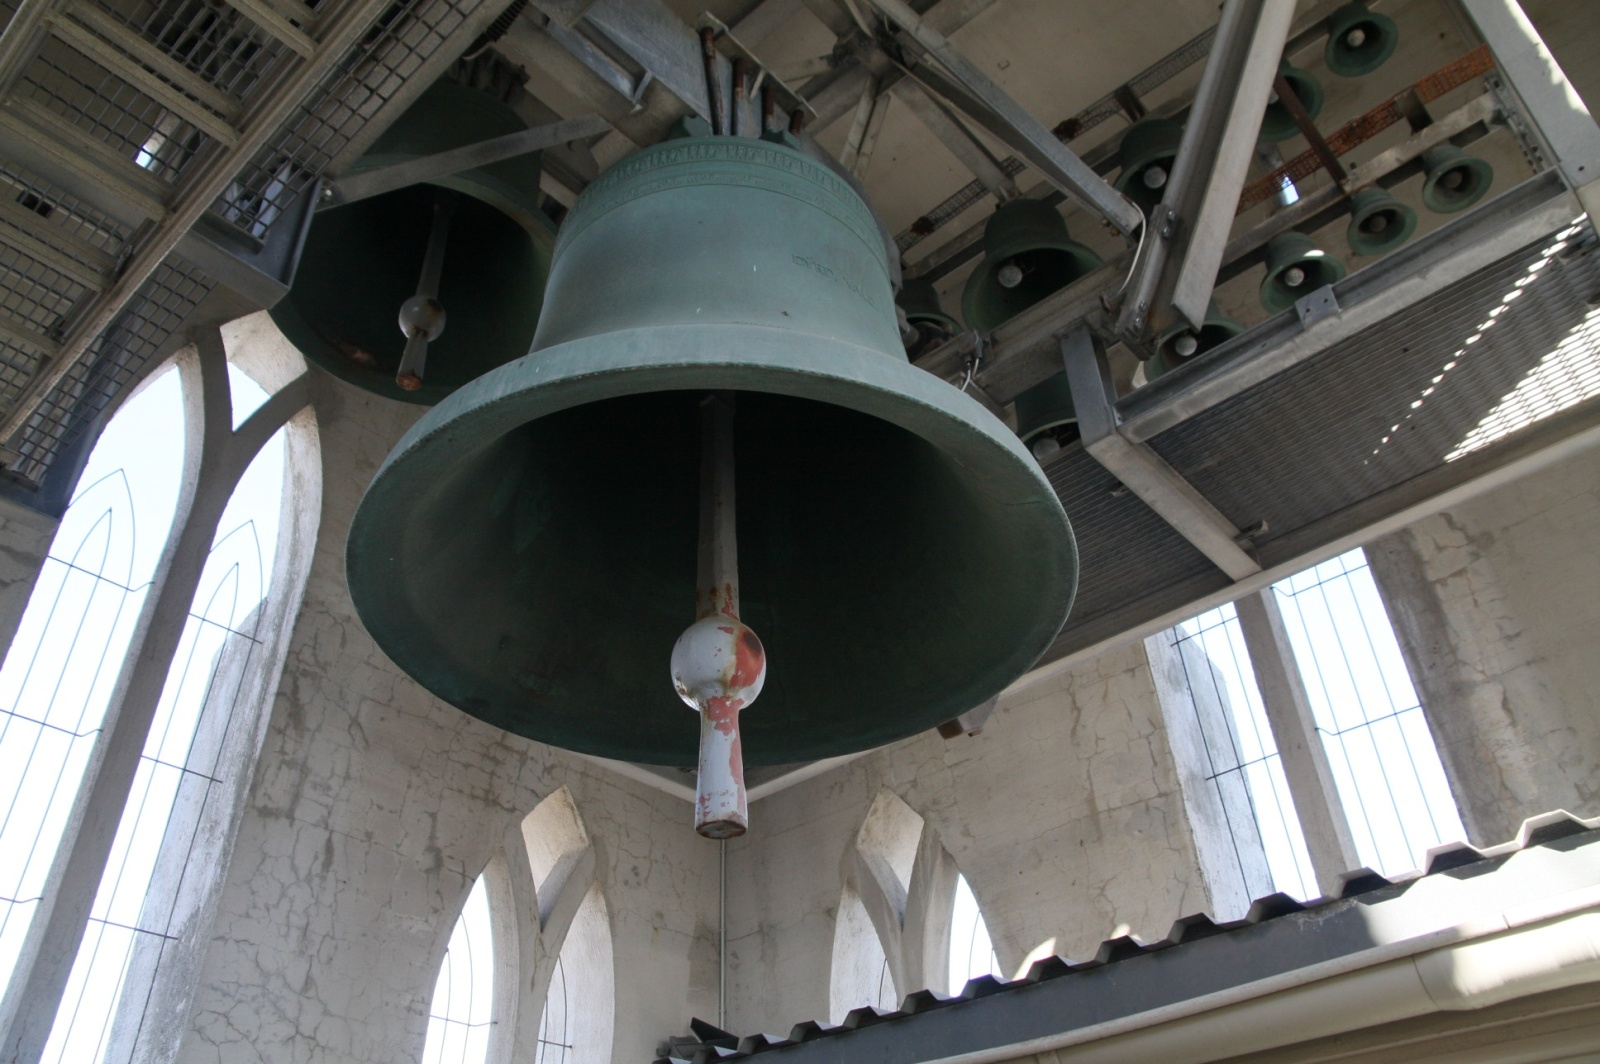 The main bell tower in the country